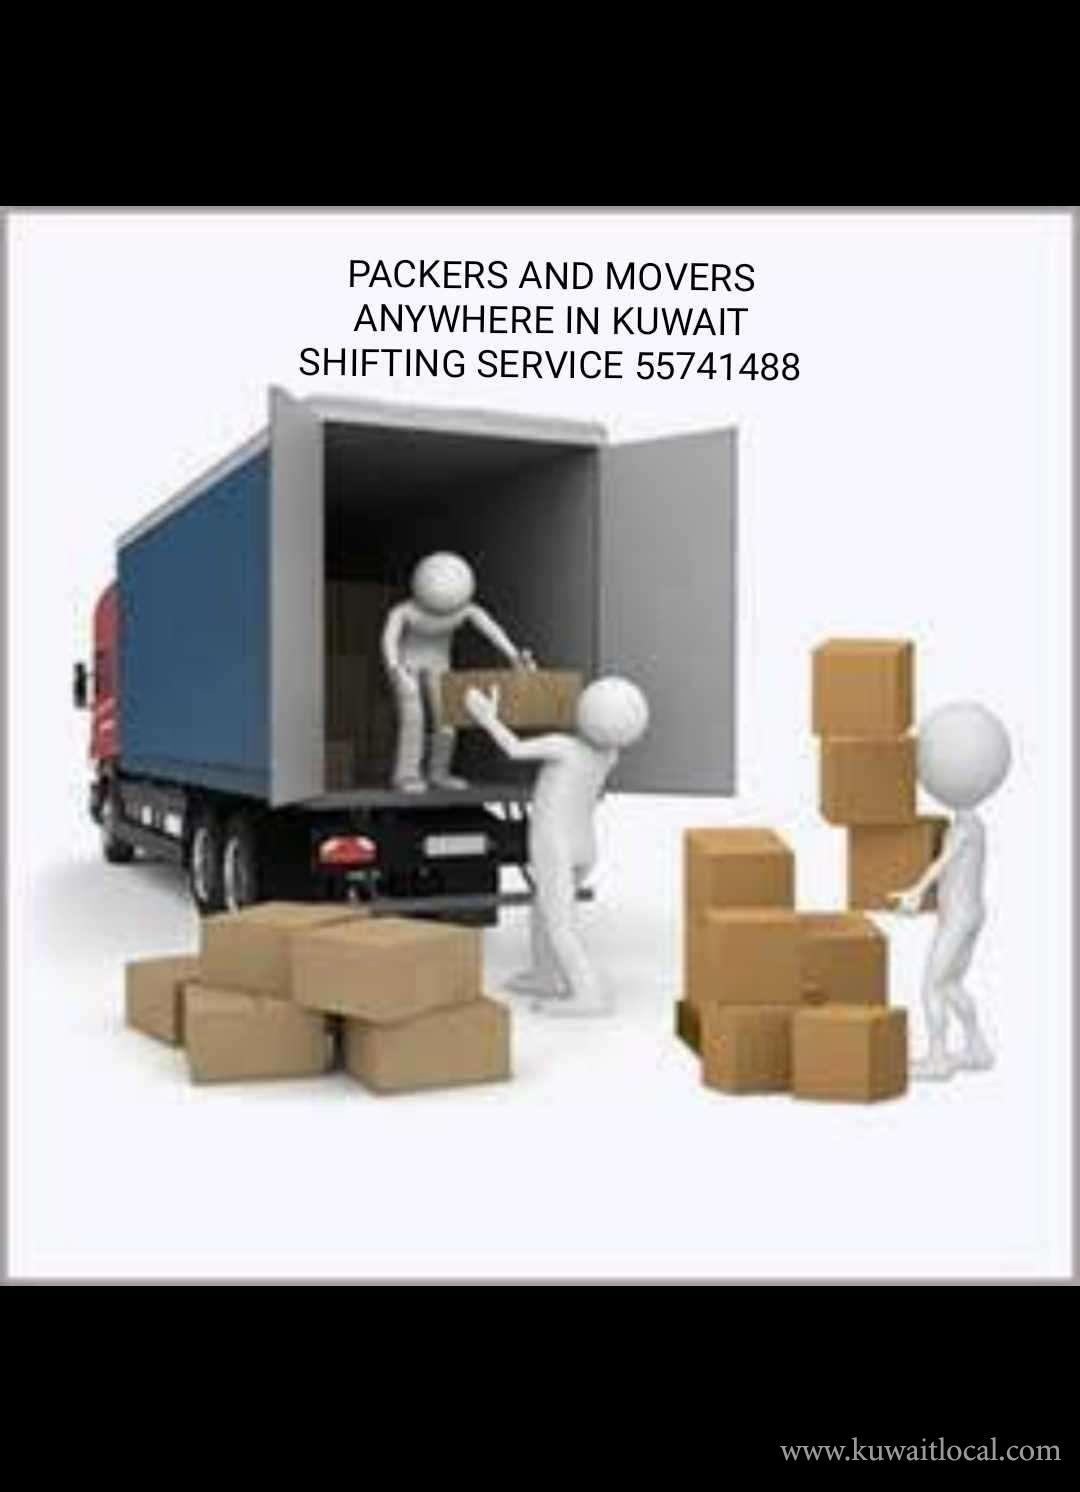 SHIFTING-SERVICE-PACKERS-AND-MOVERS-55741488-1-kuwait